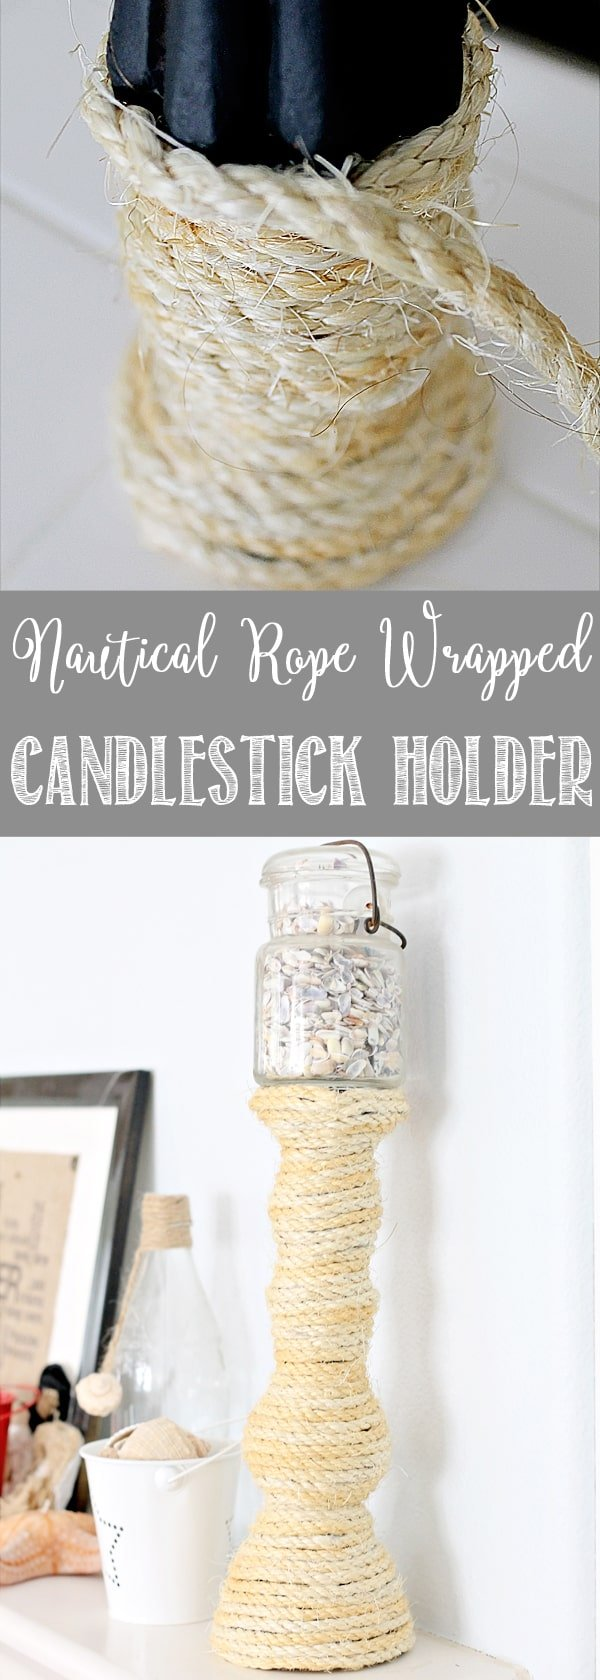 Love Coastal Decor! Check out this thrift store find turned Sisal Rope Wrapped Candlestick Holder